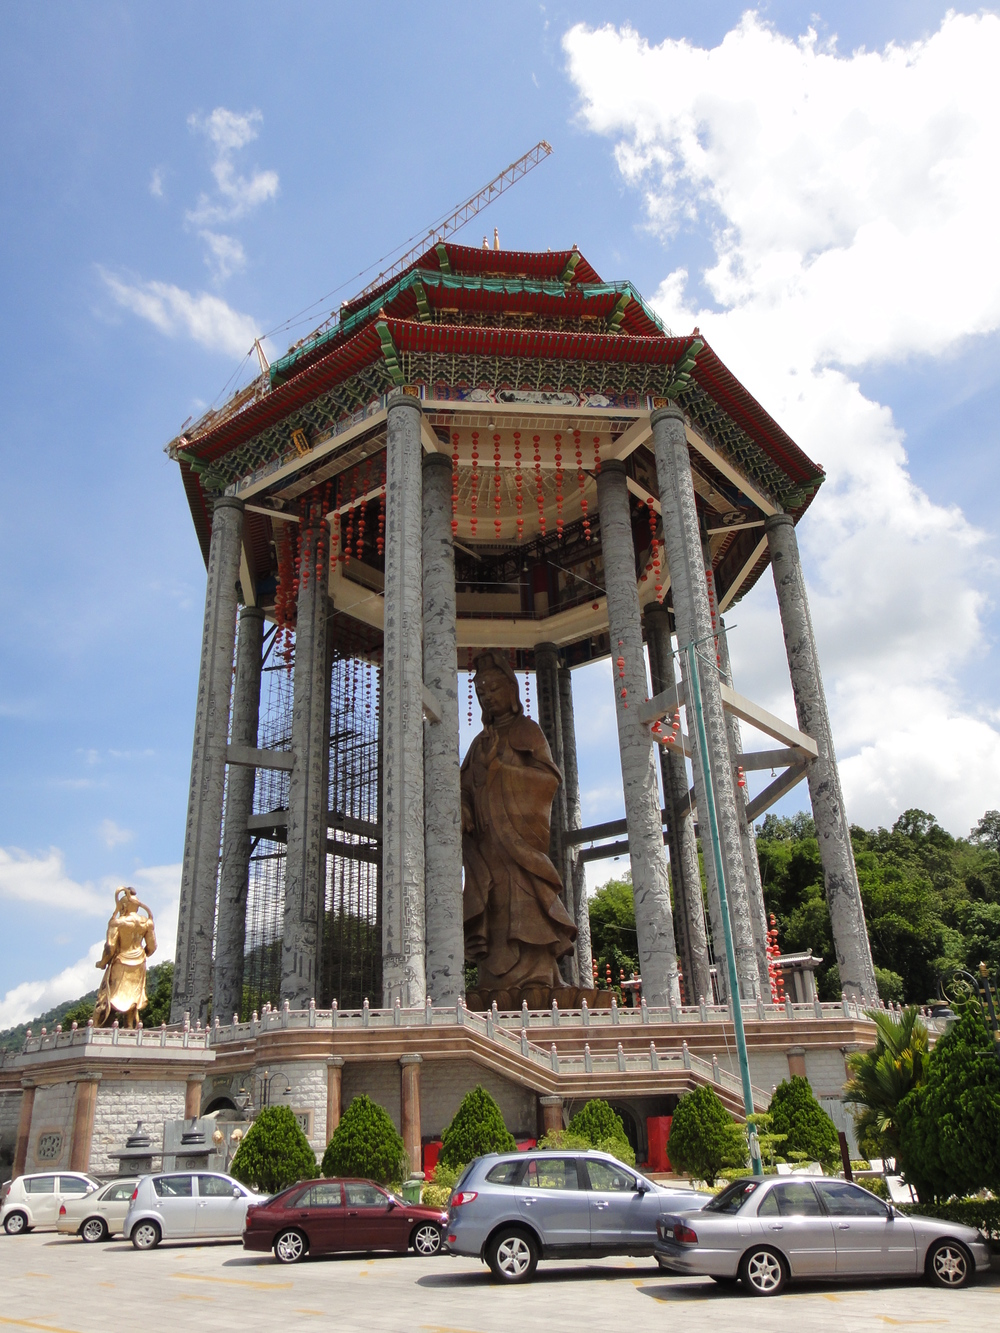 Kek Lok Si temple - The 30.2m bronze statue of Goddess of Mercy (Penang, Malaysia)